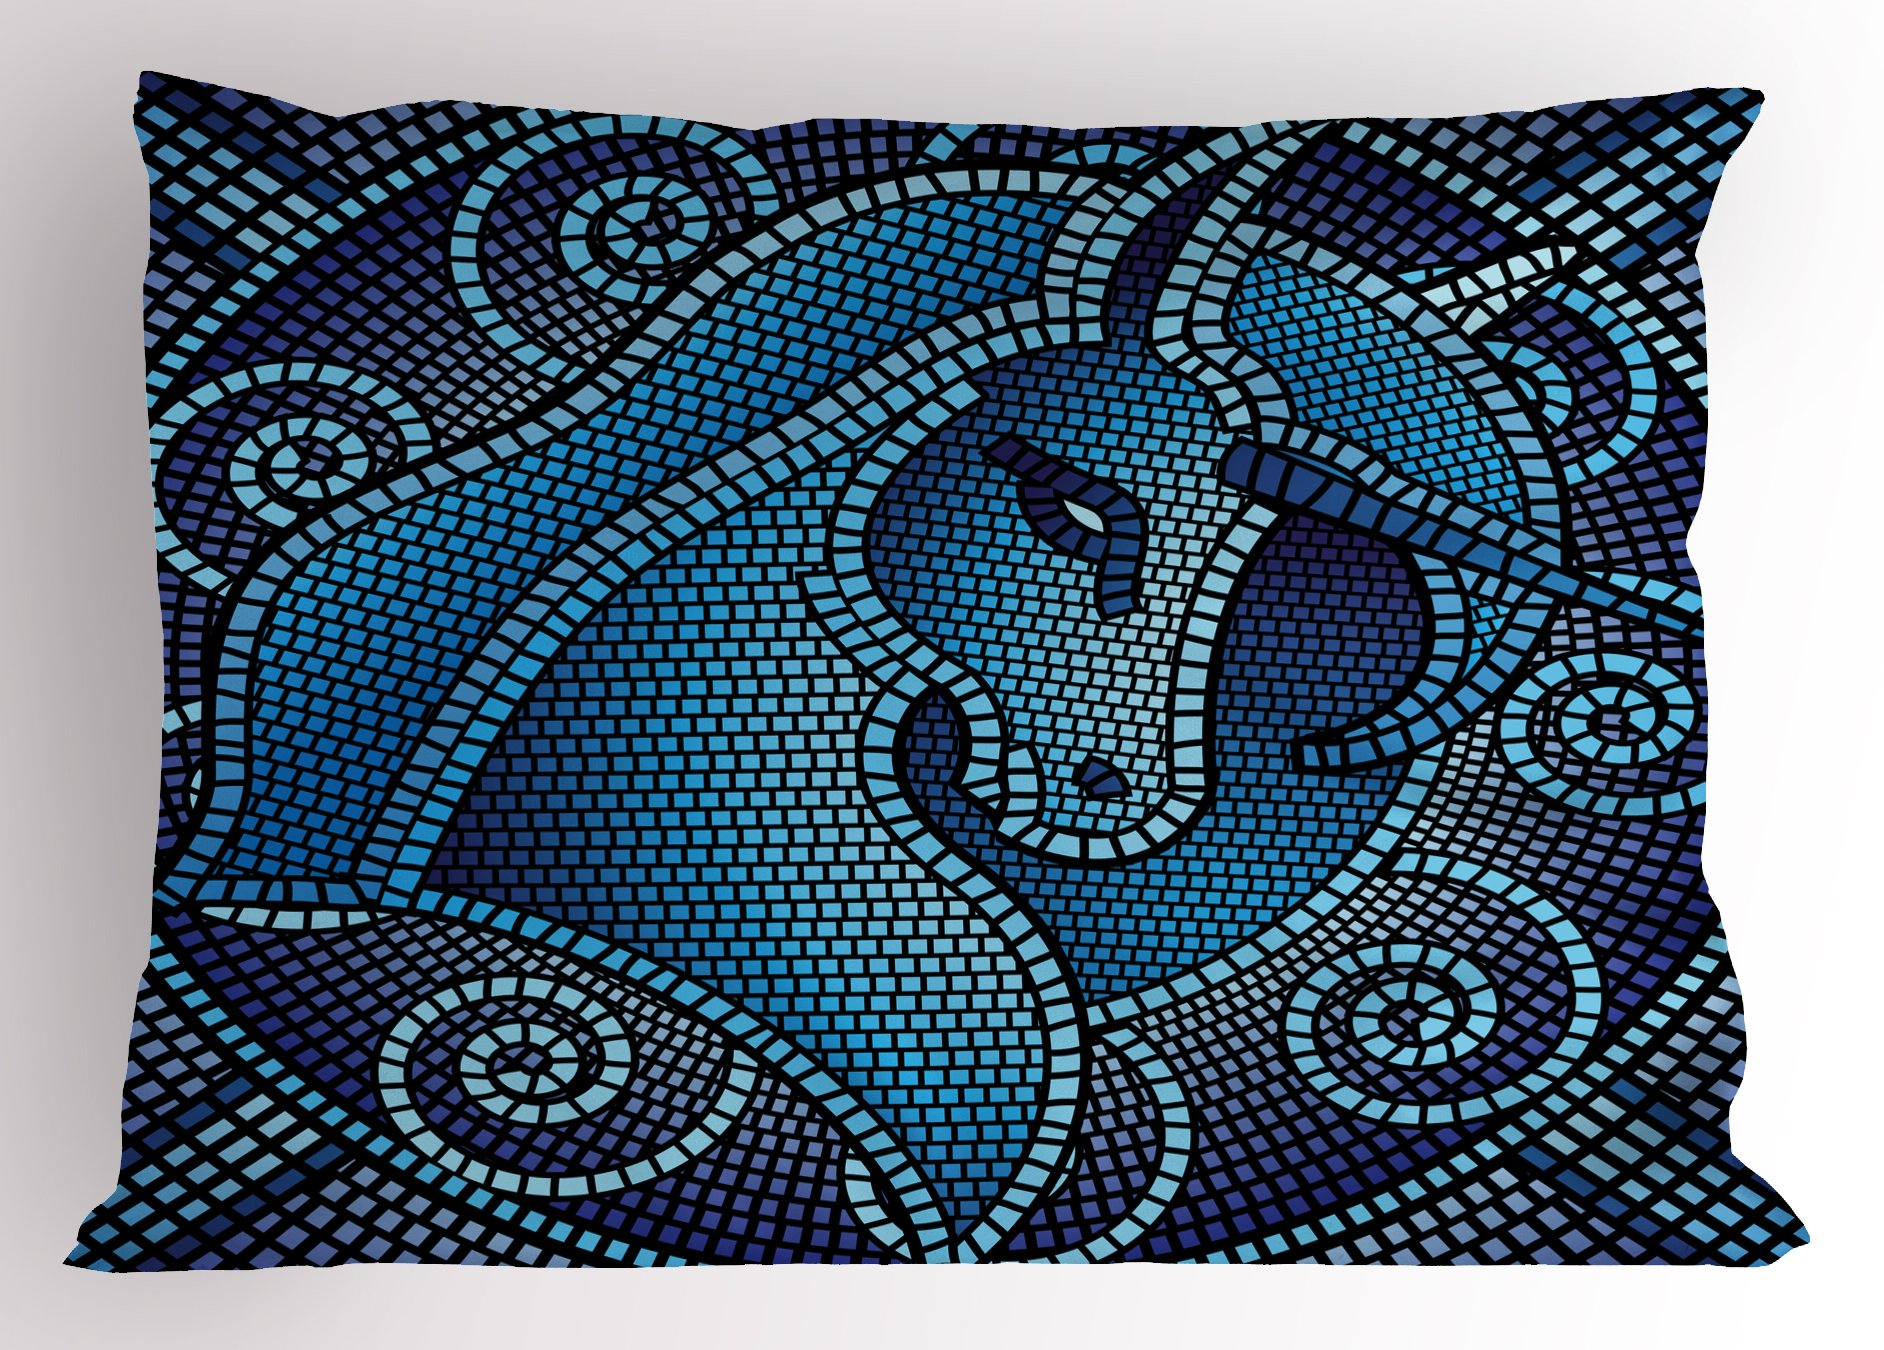 Lunarable Animal Pillow Sham, Antique Rome Mosaic Mythical Horse Unicorn with its Horn Ombre Like Print, Decorative Standard King Size Printed Pillowcase, 36 X 20 inches, Dark Blue and Blue